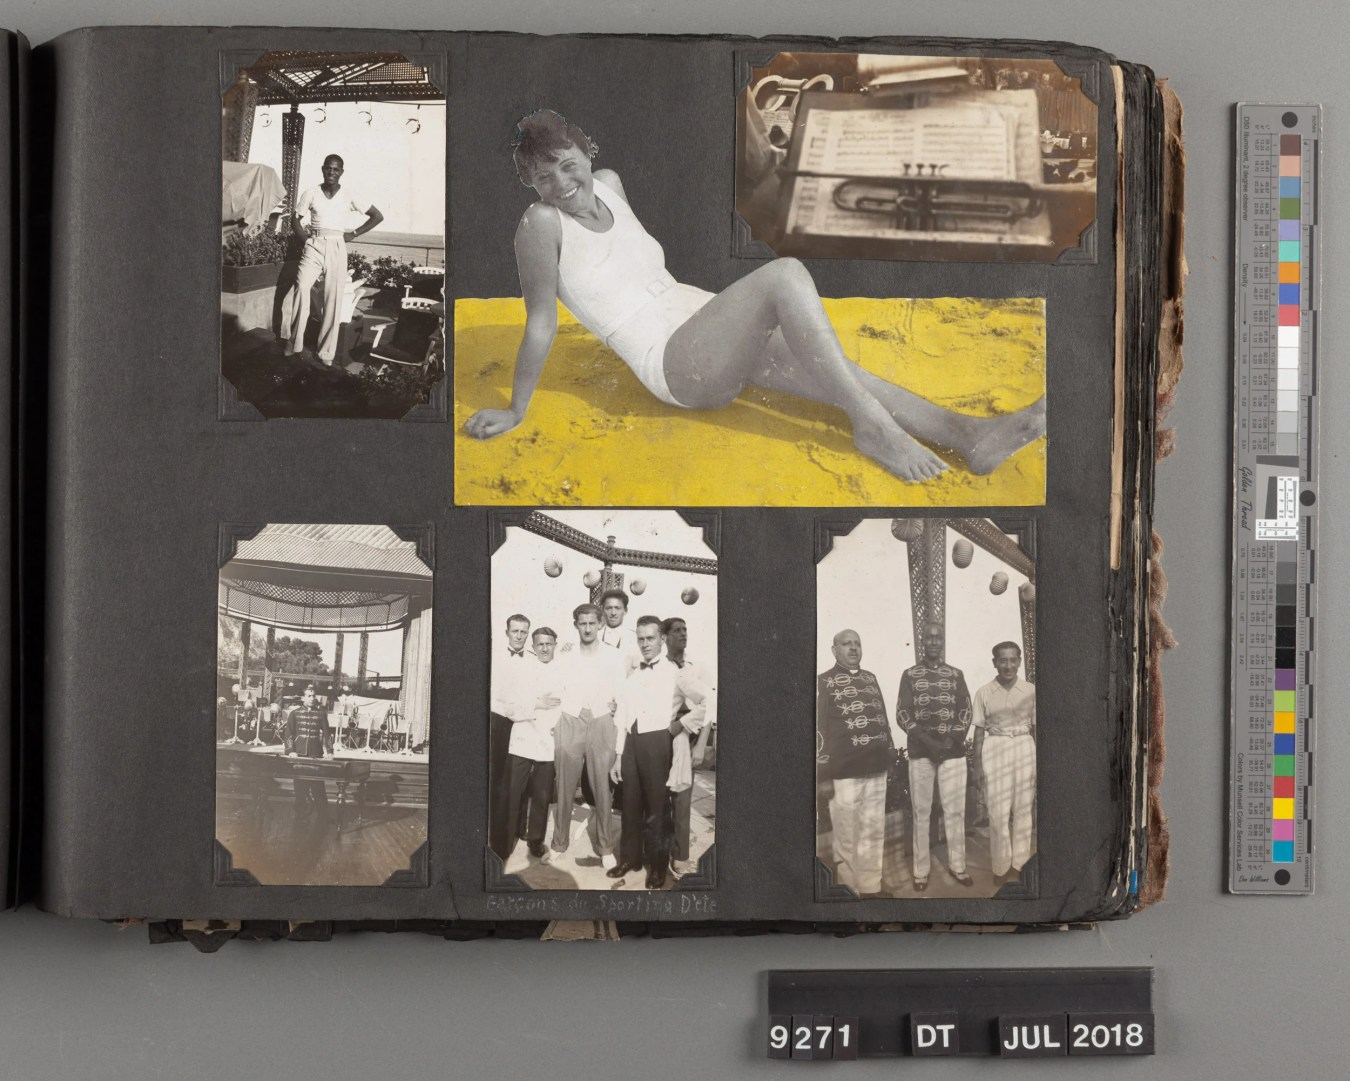 Trumpet player Bill Coleman's photo albums from the 1930s